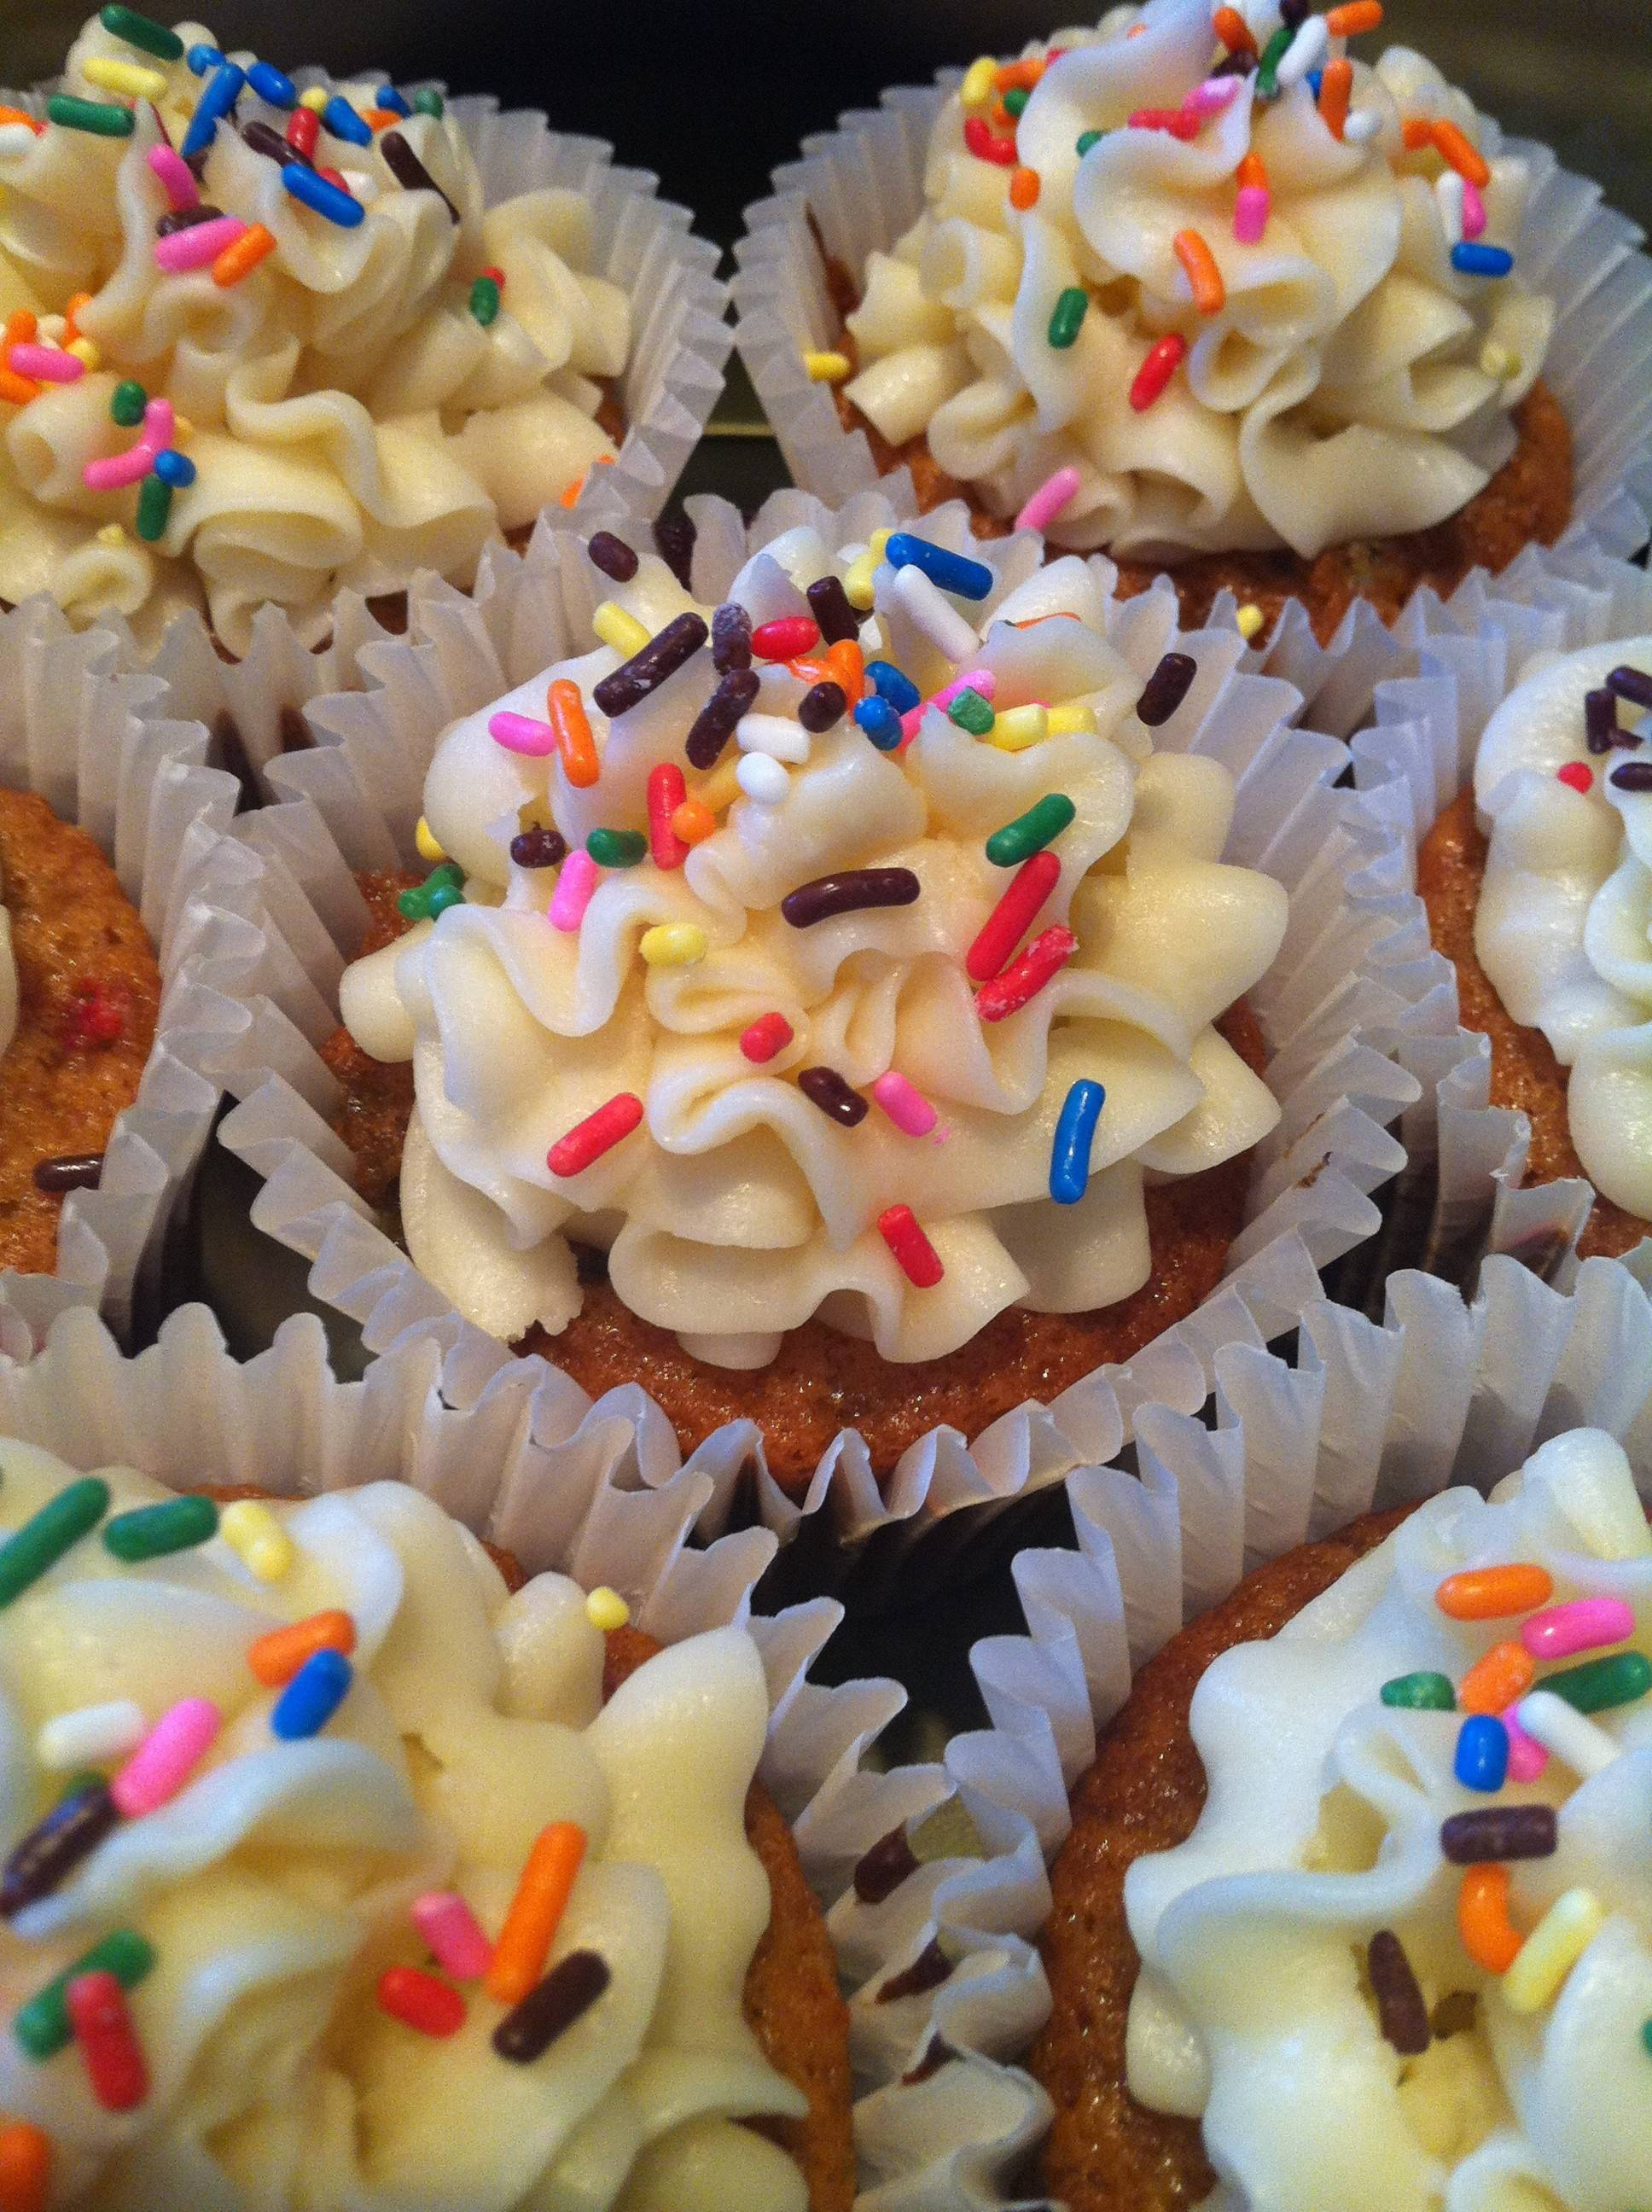 Cupcakes by Terri Edmunds of Naperville